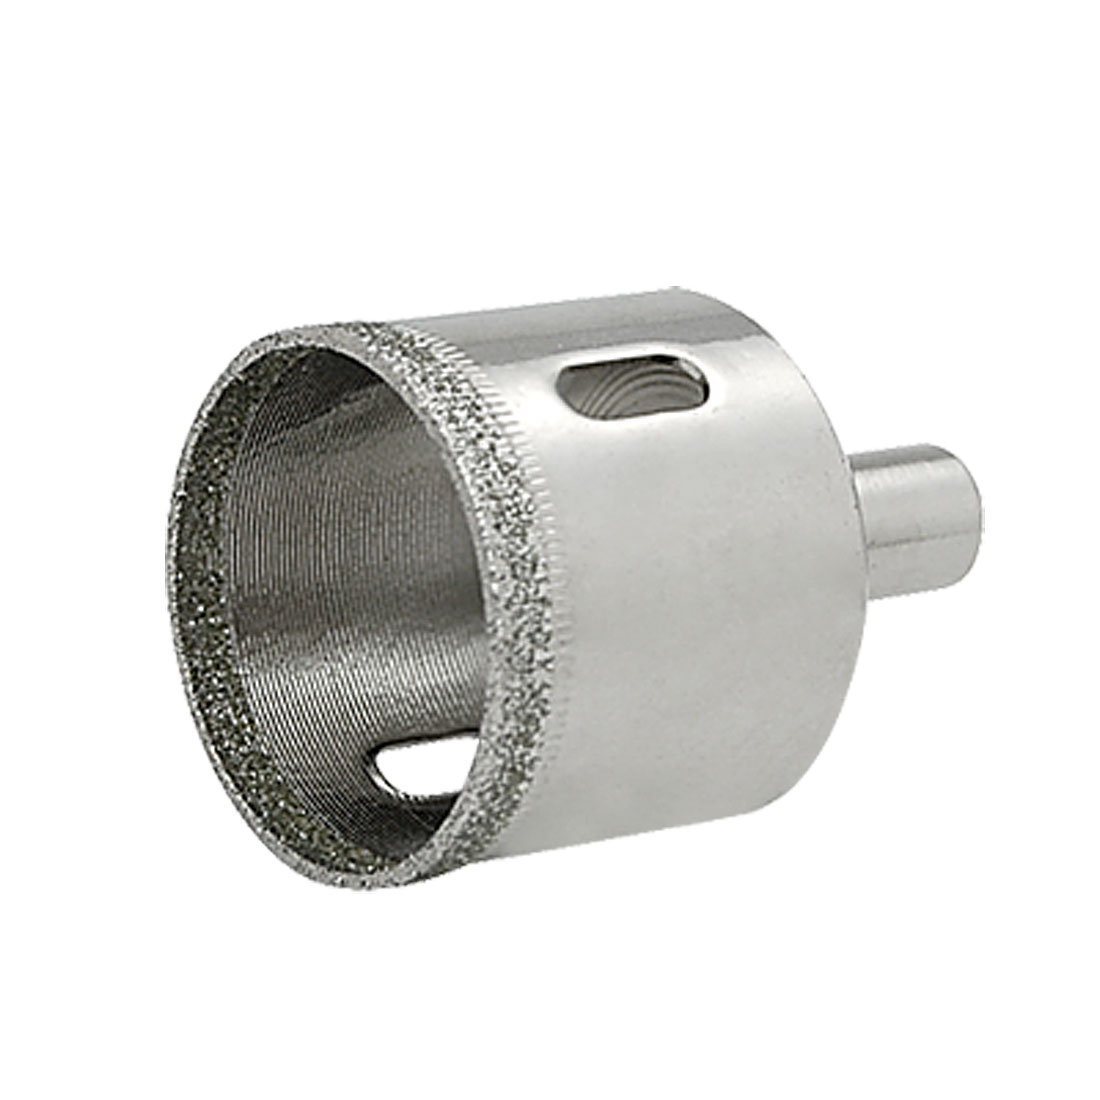 35mm Diamond Coated Glass Hardware Hole Saw Cutter Tool